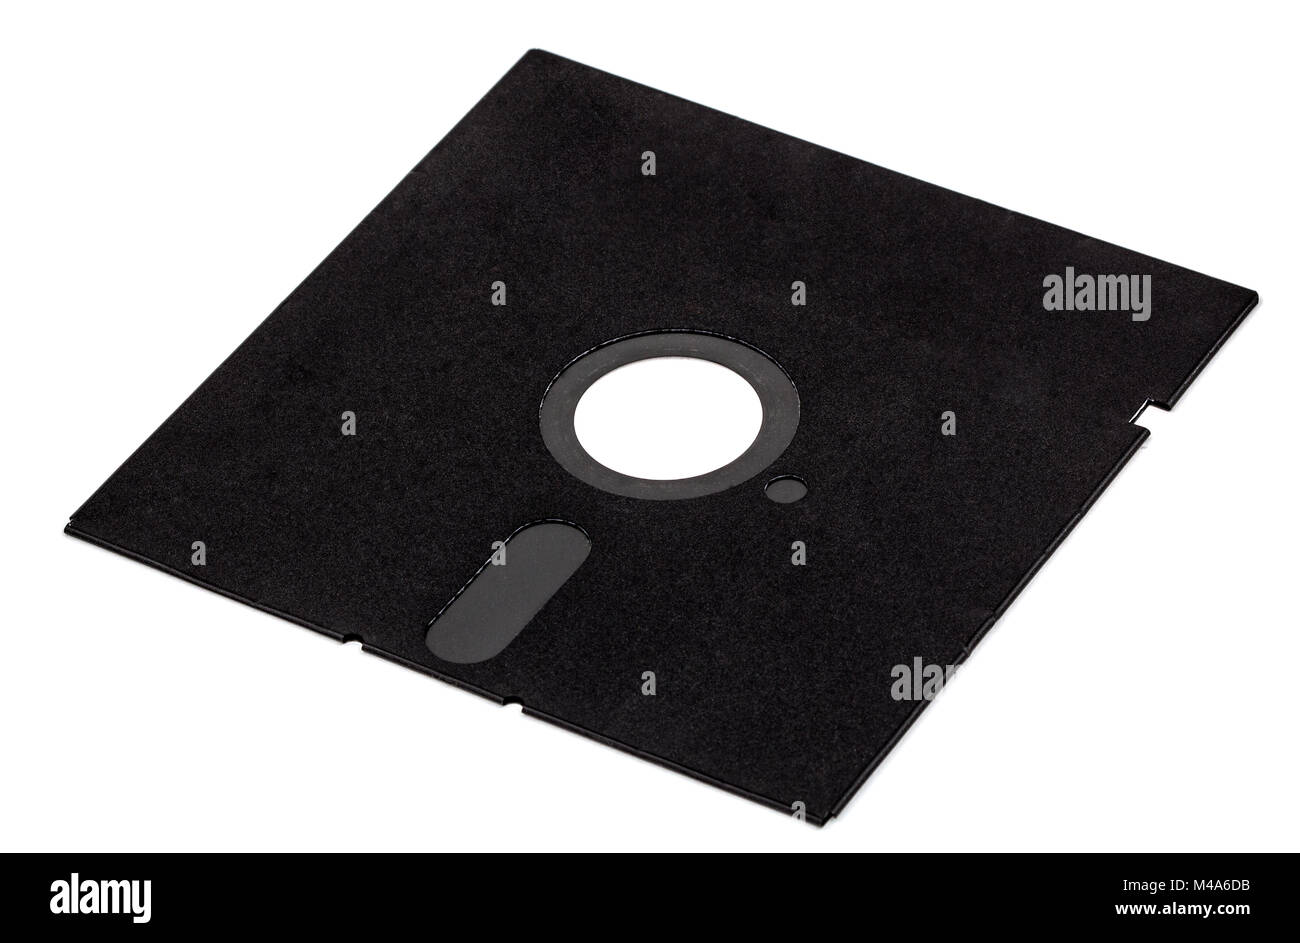 Old diskette 5 25 inches, isolated on white background - Stock Image